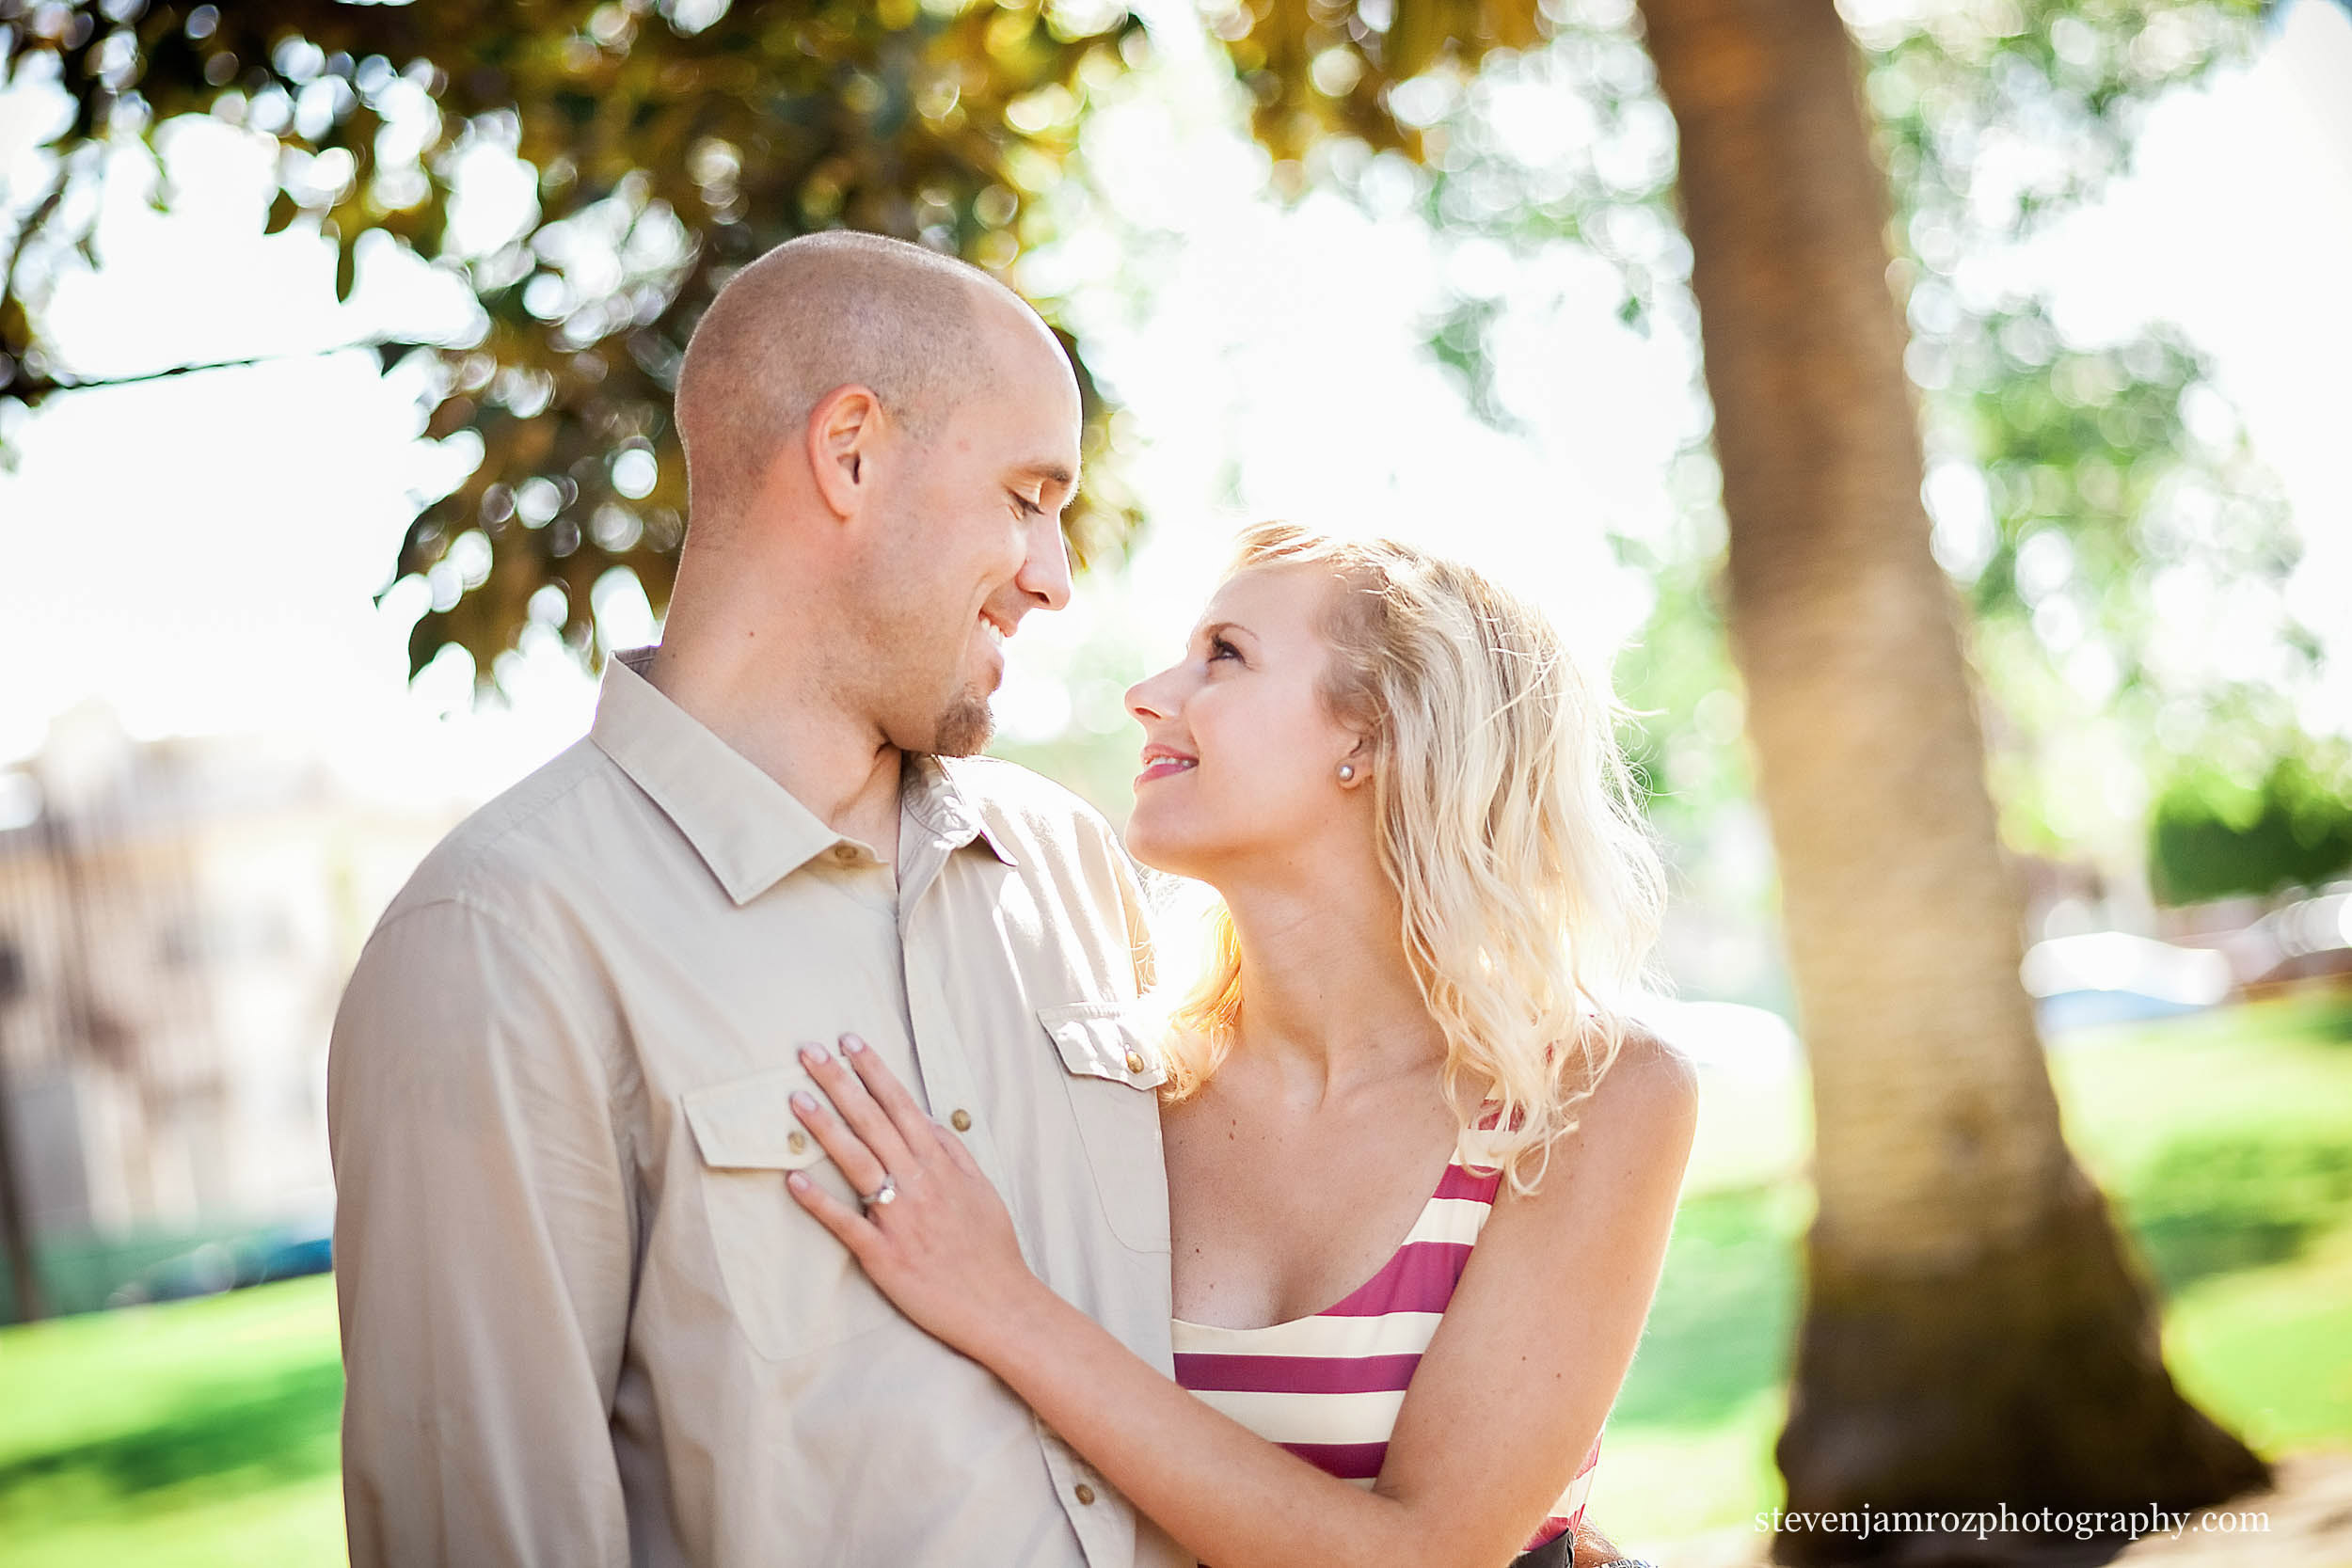 warm-sunset-photo-engagement-couple-raleigh-photographer-0008.jpg